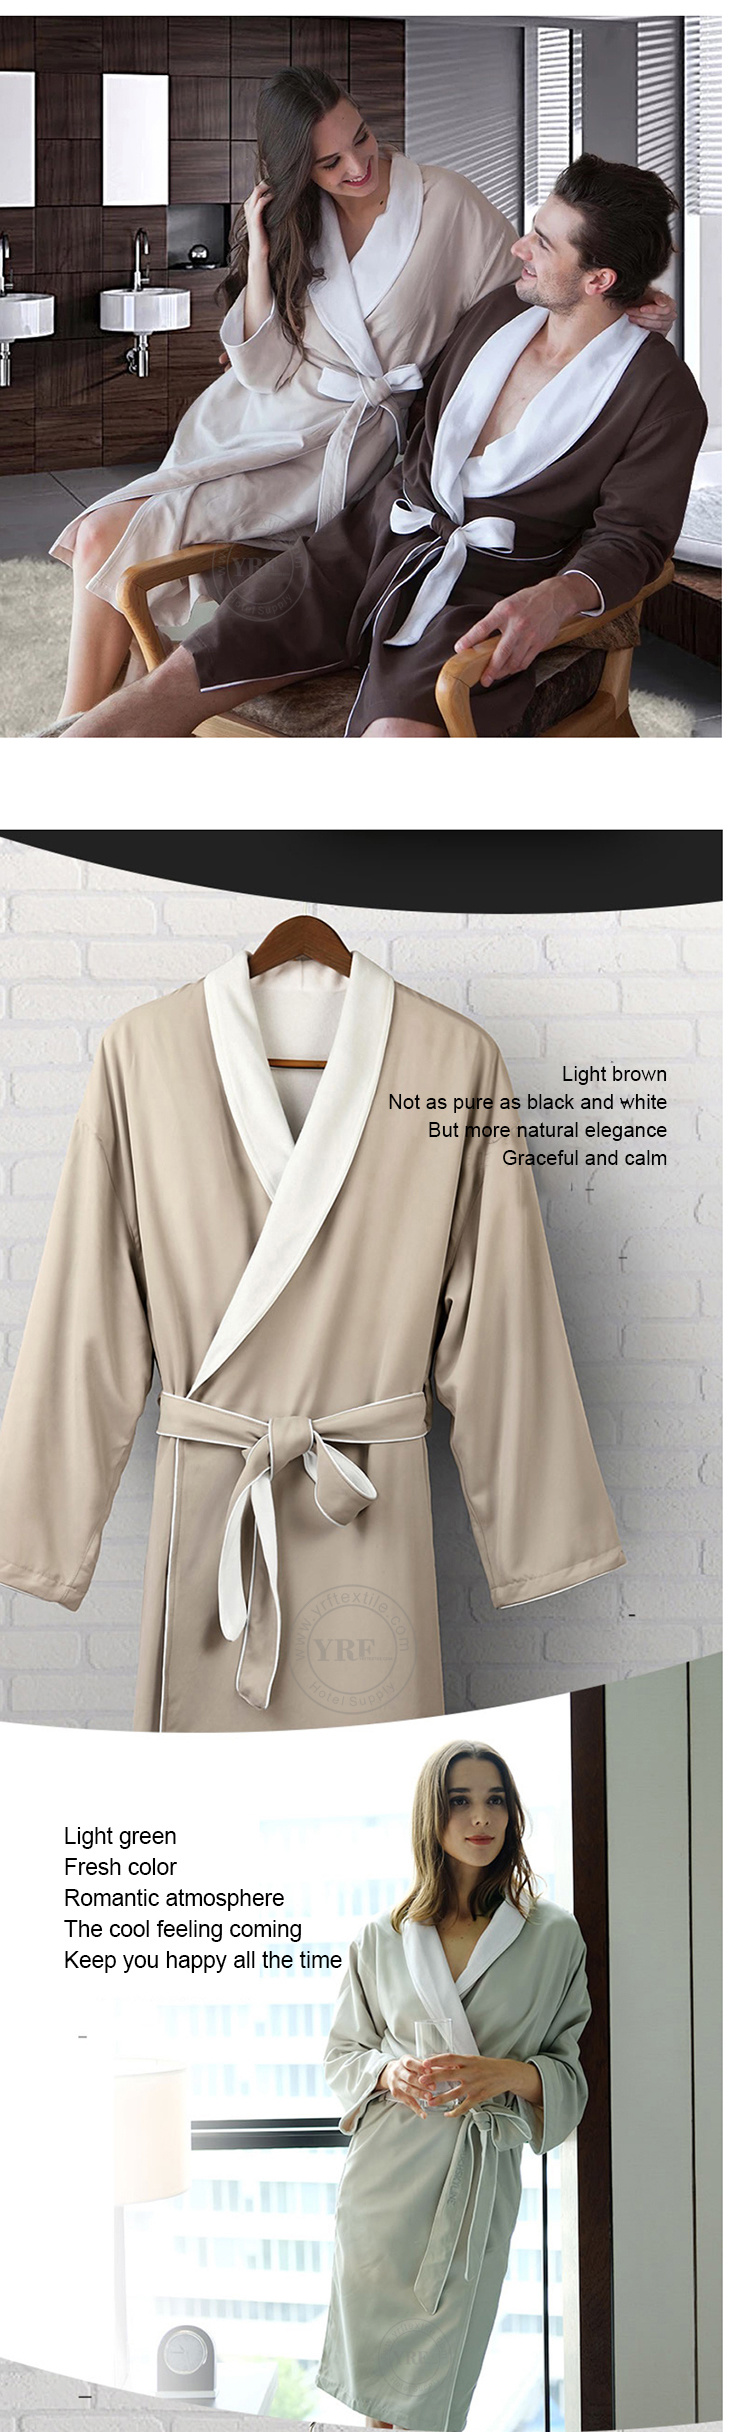 Guangzhou Foshan 100% Cotton White Waffle Velourterry Hotel Bathrobe ... 8a1f50706